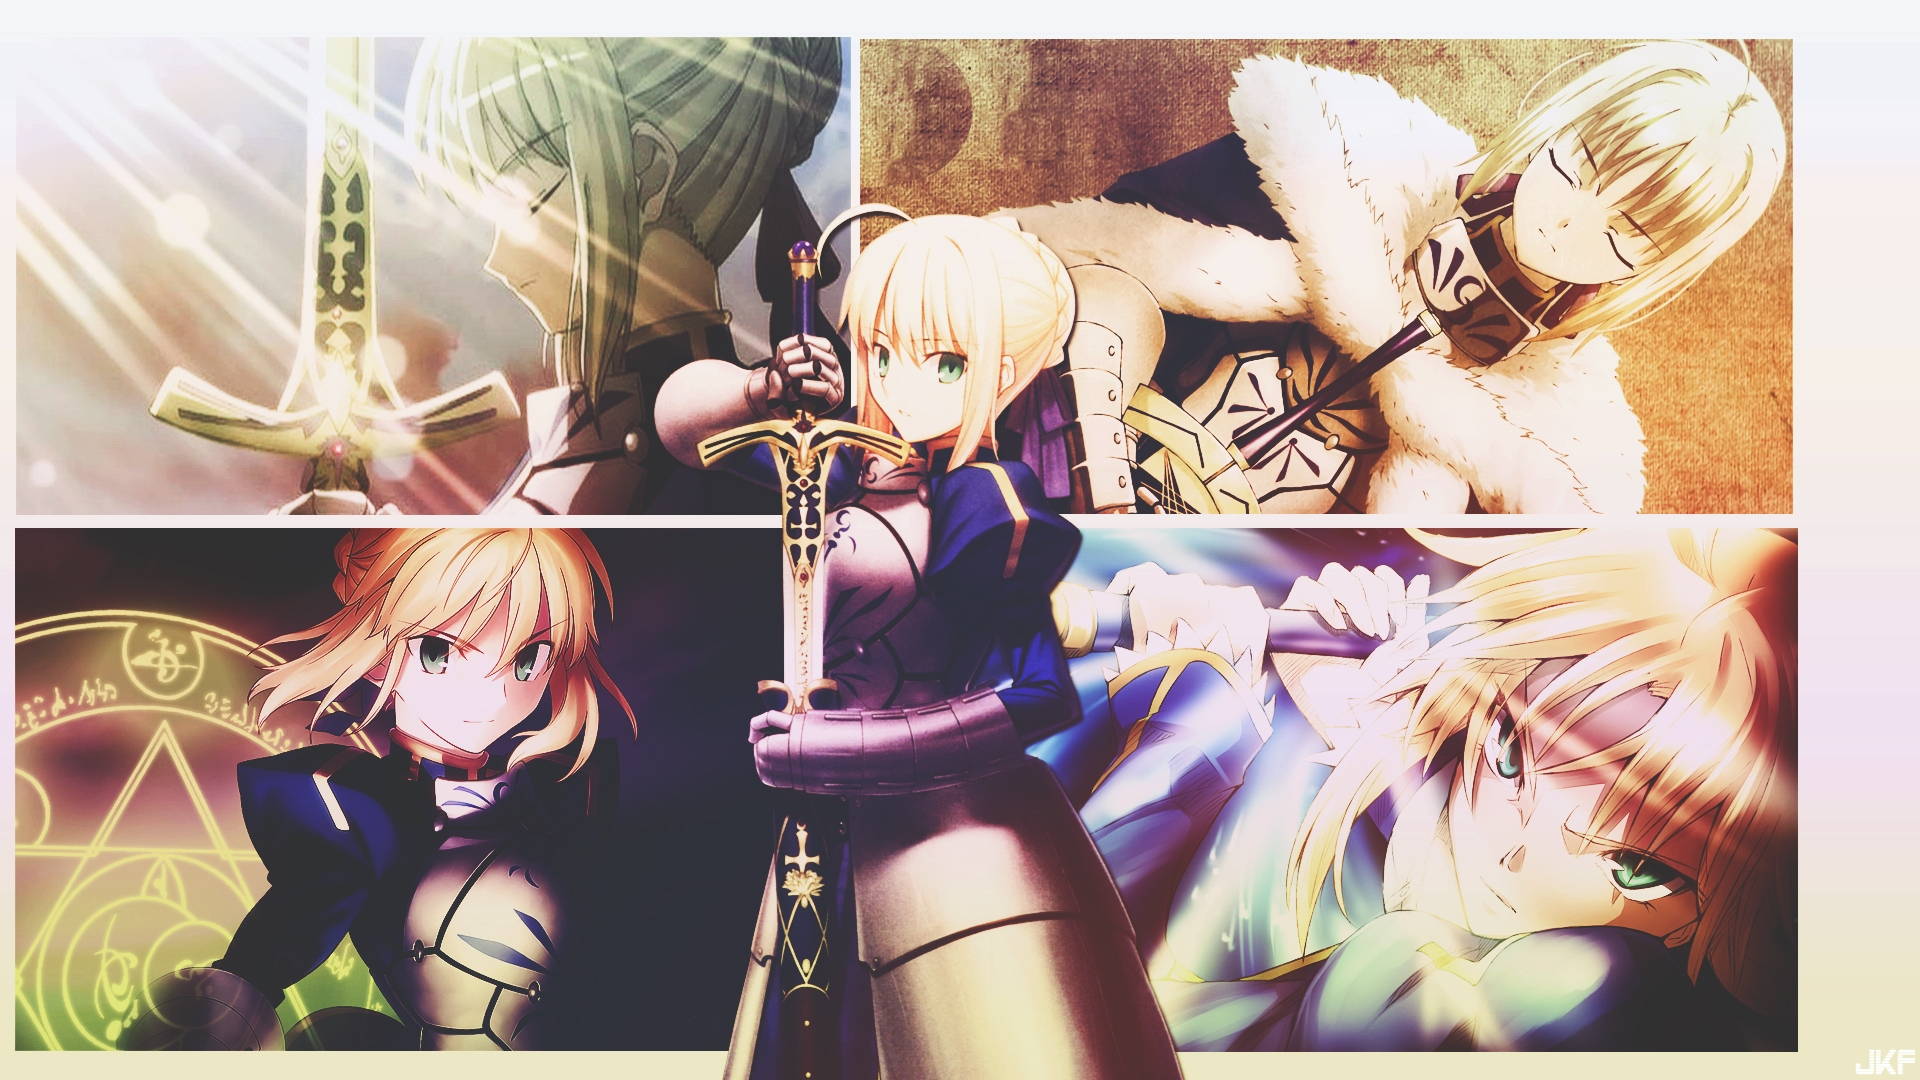 saber_wallpaper_3_by_dinocojv-d8ovygs.jpg